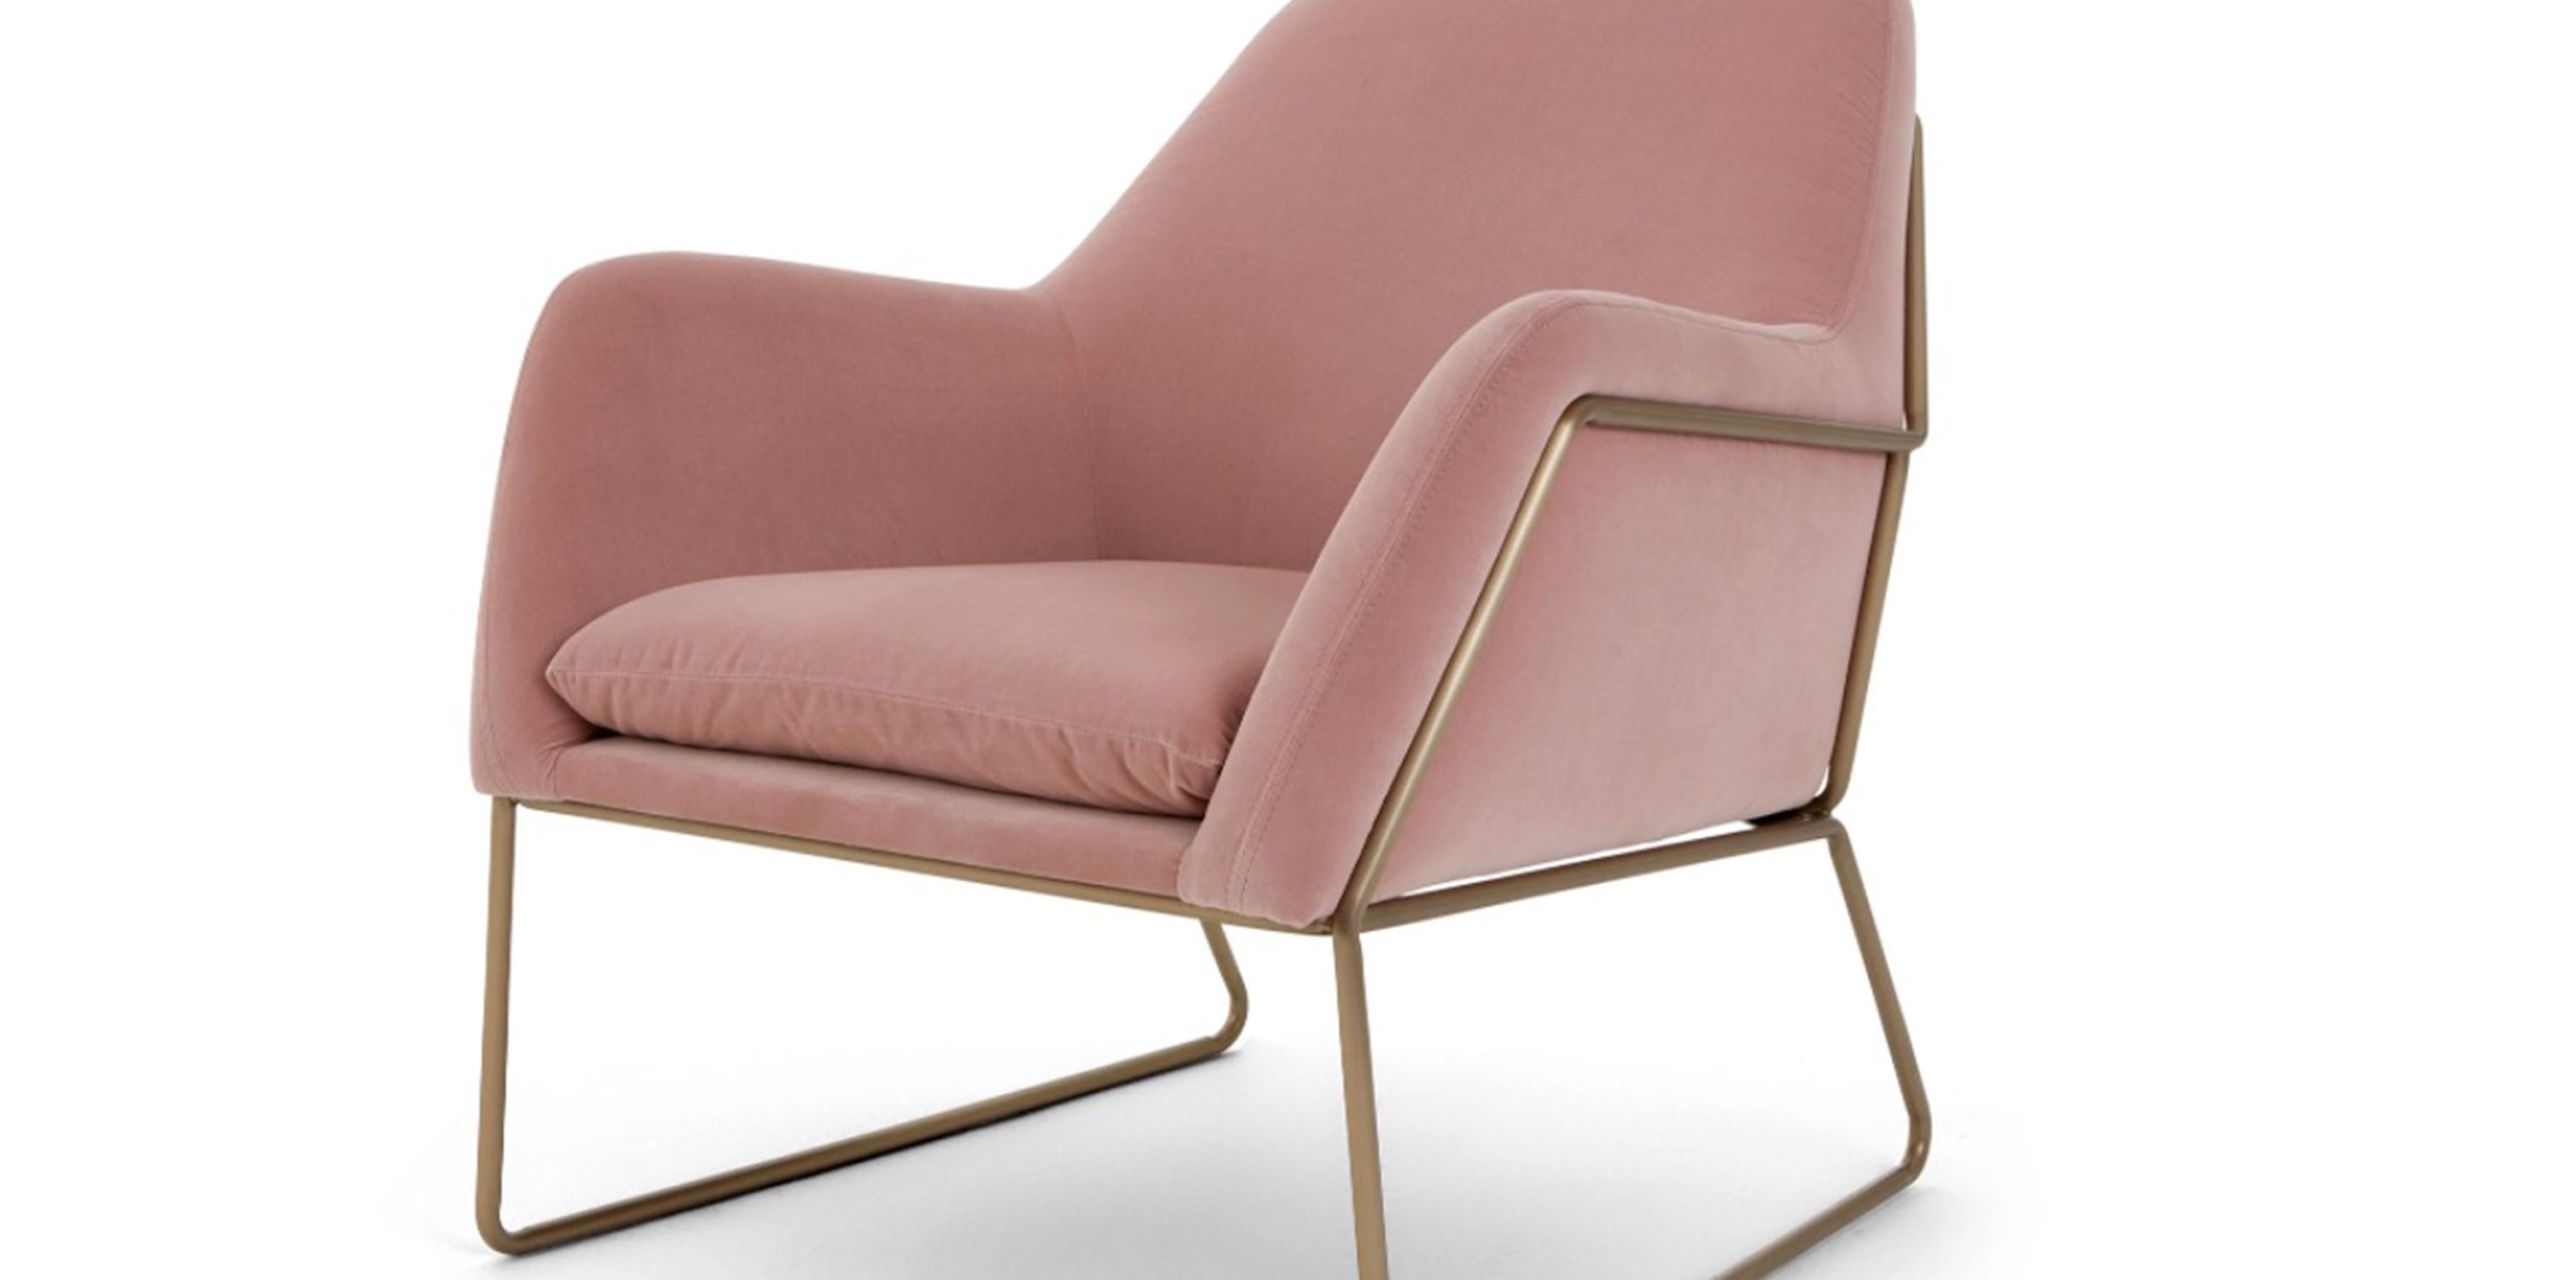 Made Blush Pink Velvet Chair